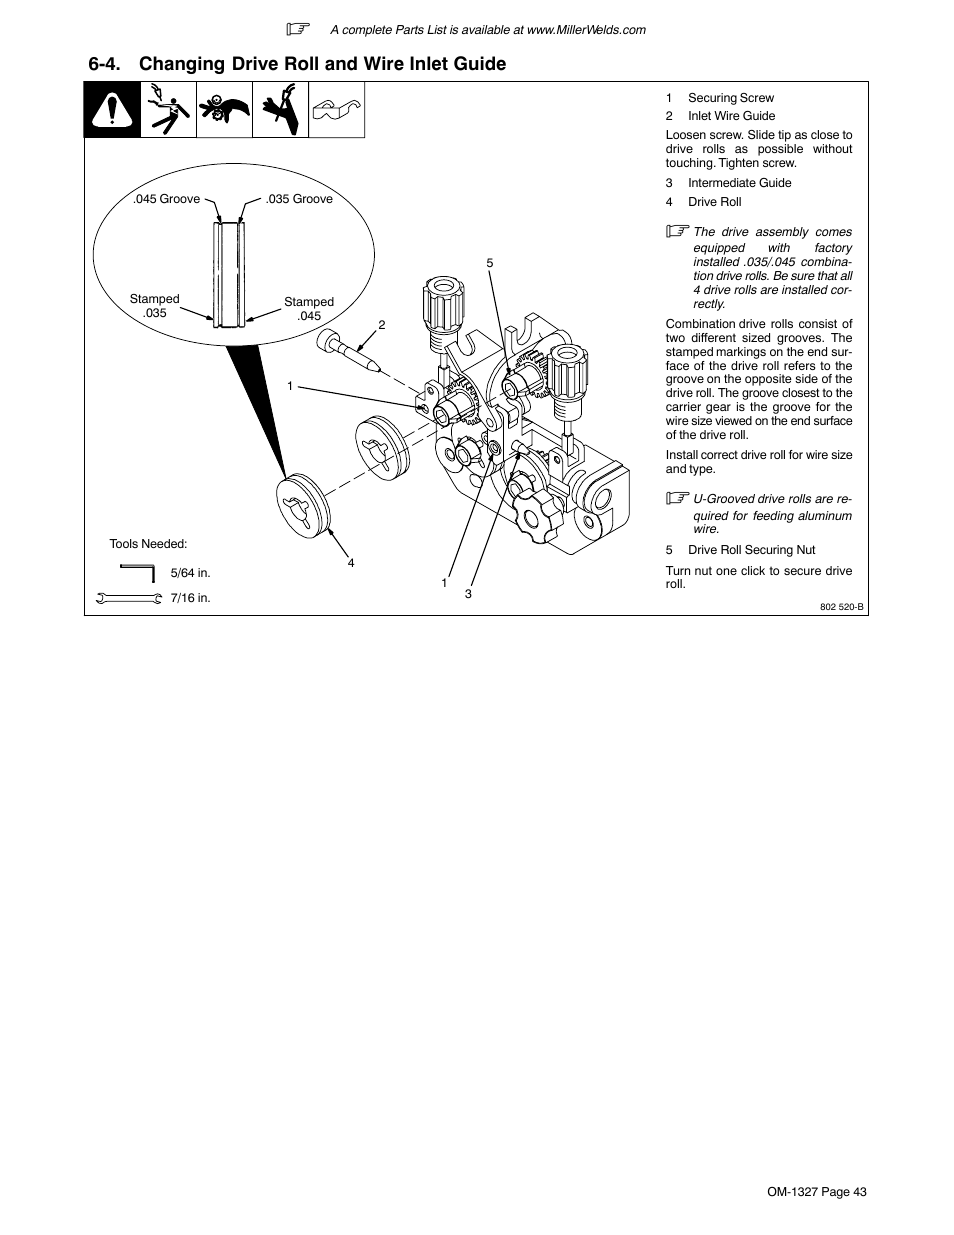 medium resolution of 4 changing drive roll and wire inlet guide miller electric millermatic 350p user manual page 47 56